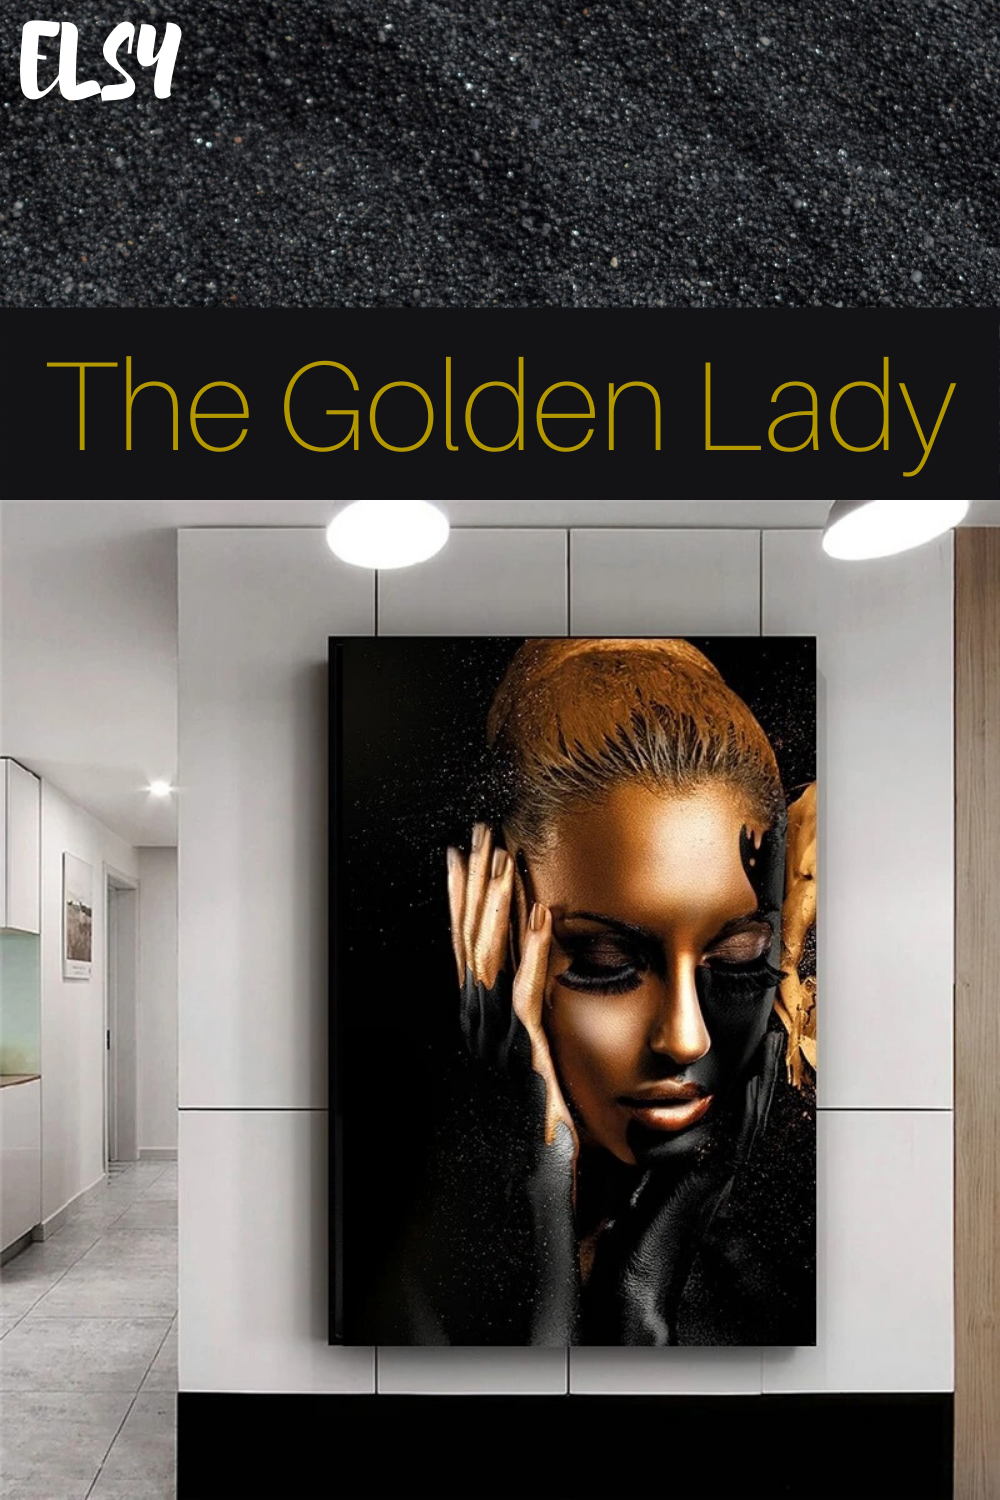 The Golden Lady In 2020 The Golden Lady Inspirational Wall Art